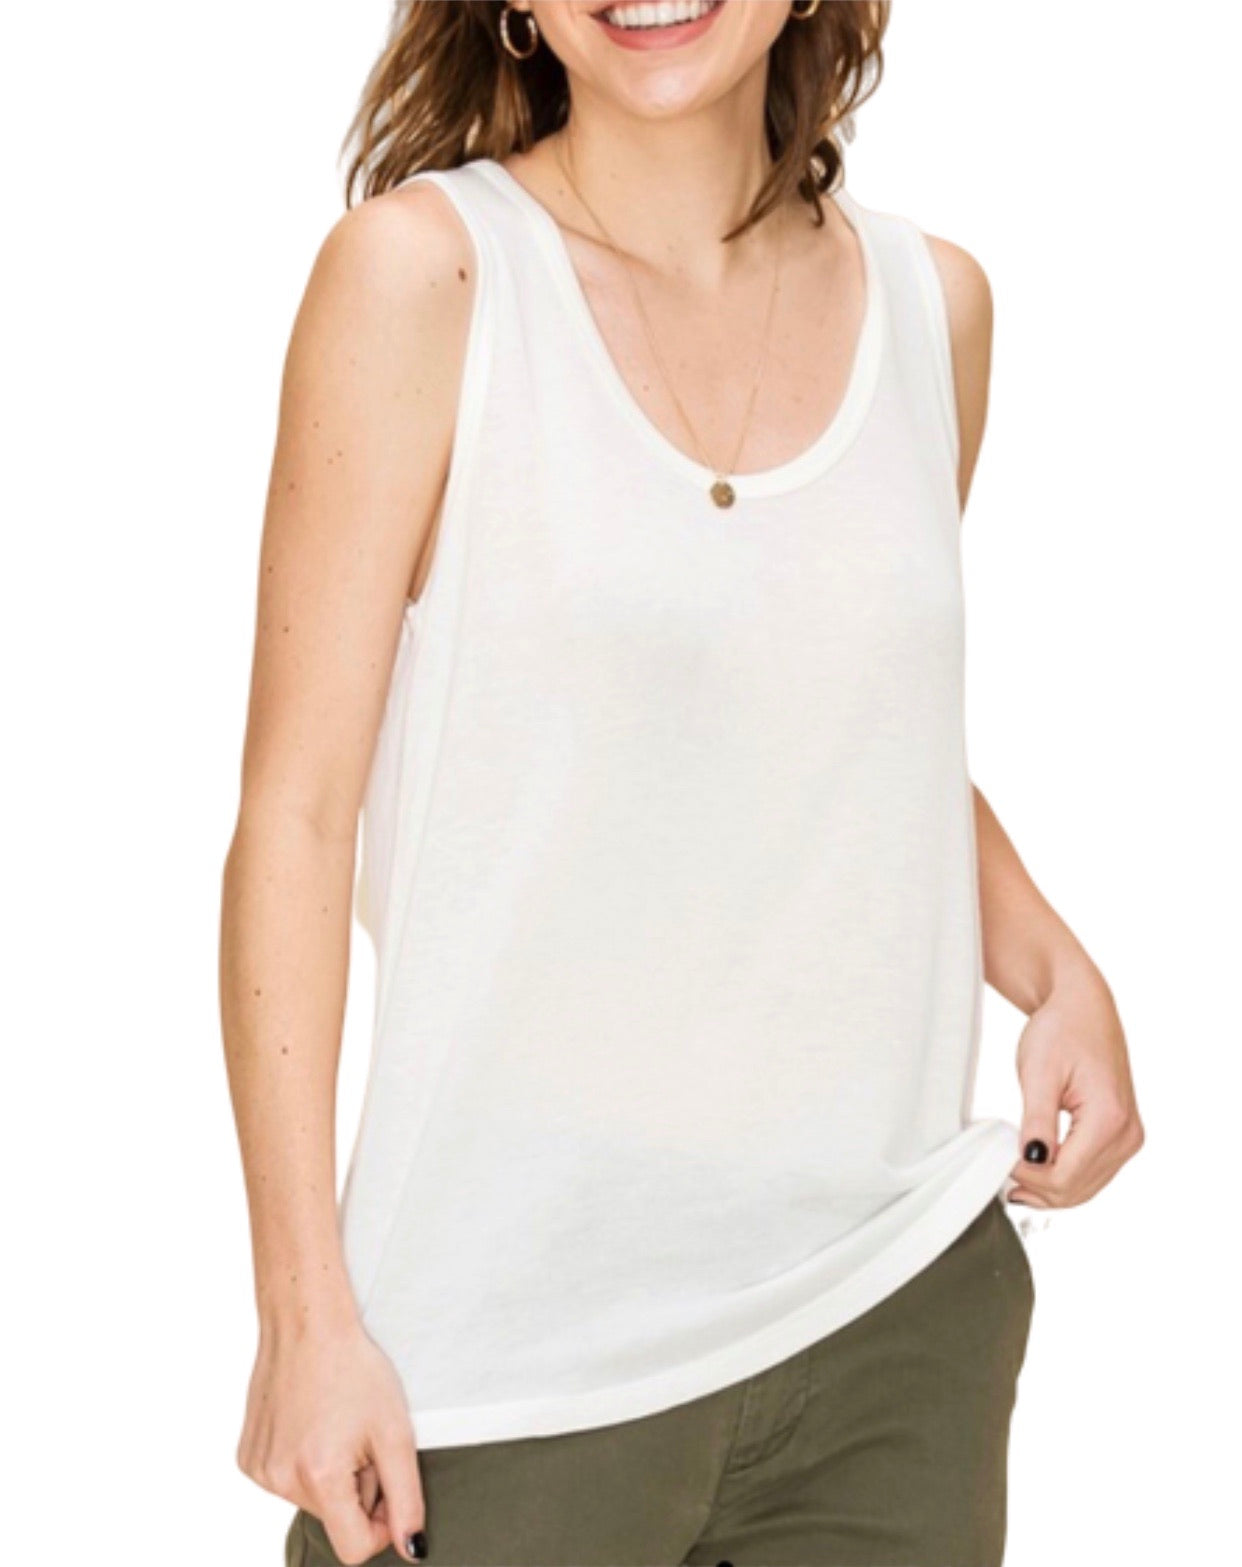 New ! The Basically Everything Sleeveless Top - Glamco Boutique